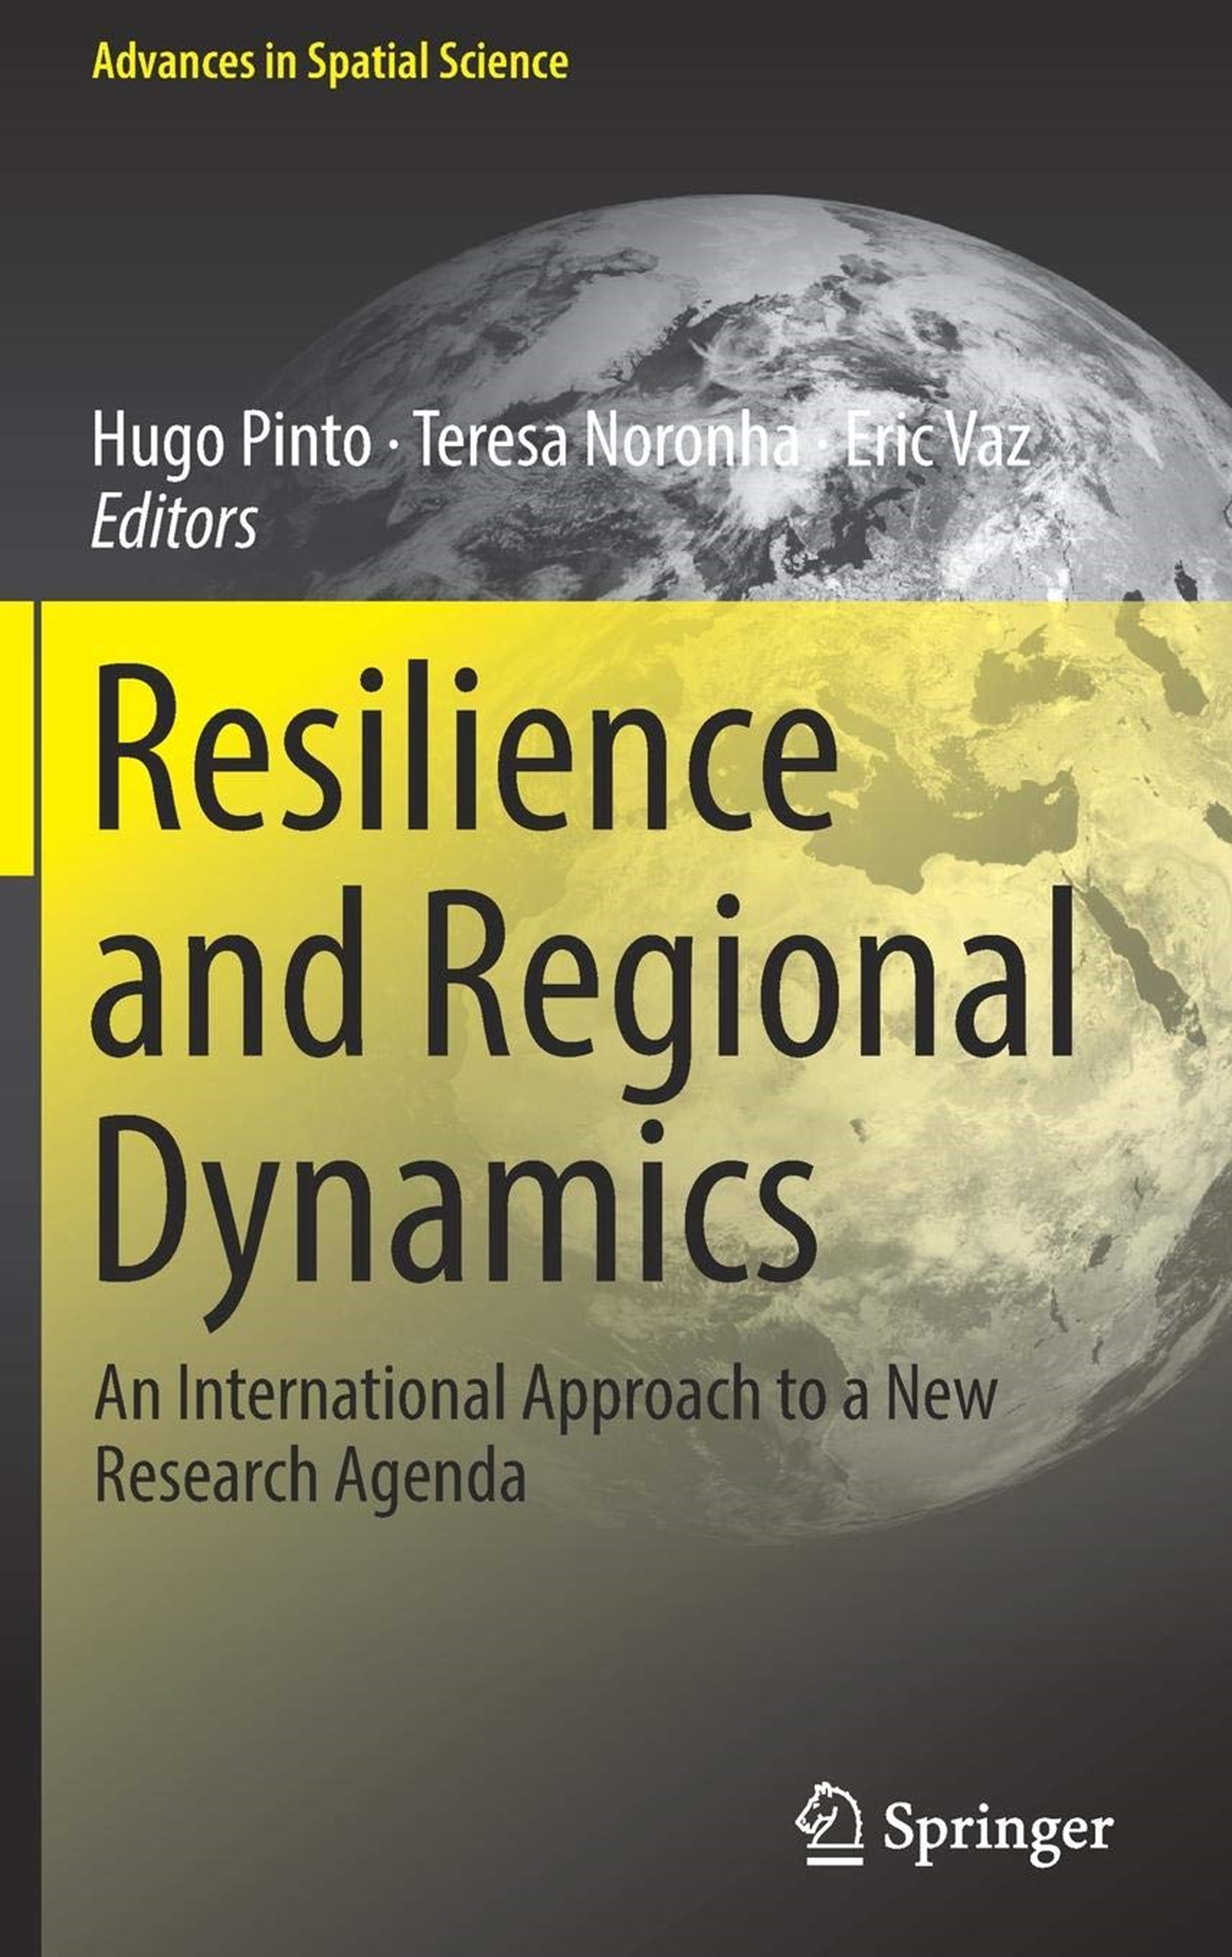 Resilience and Regional Dynamics: An International Approach to a New Research Agenda